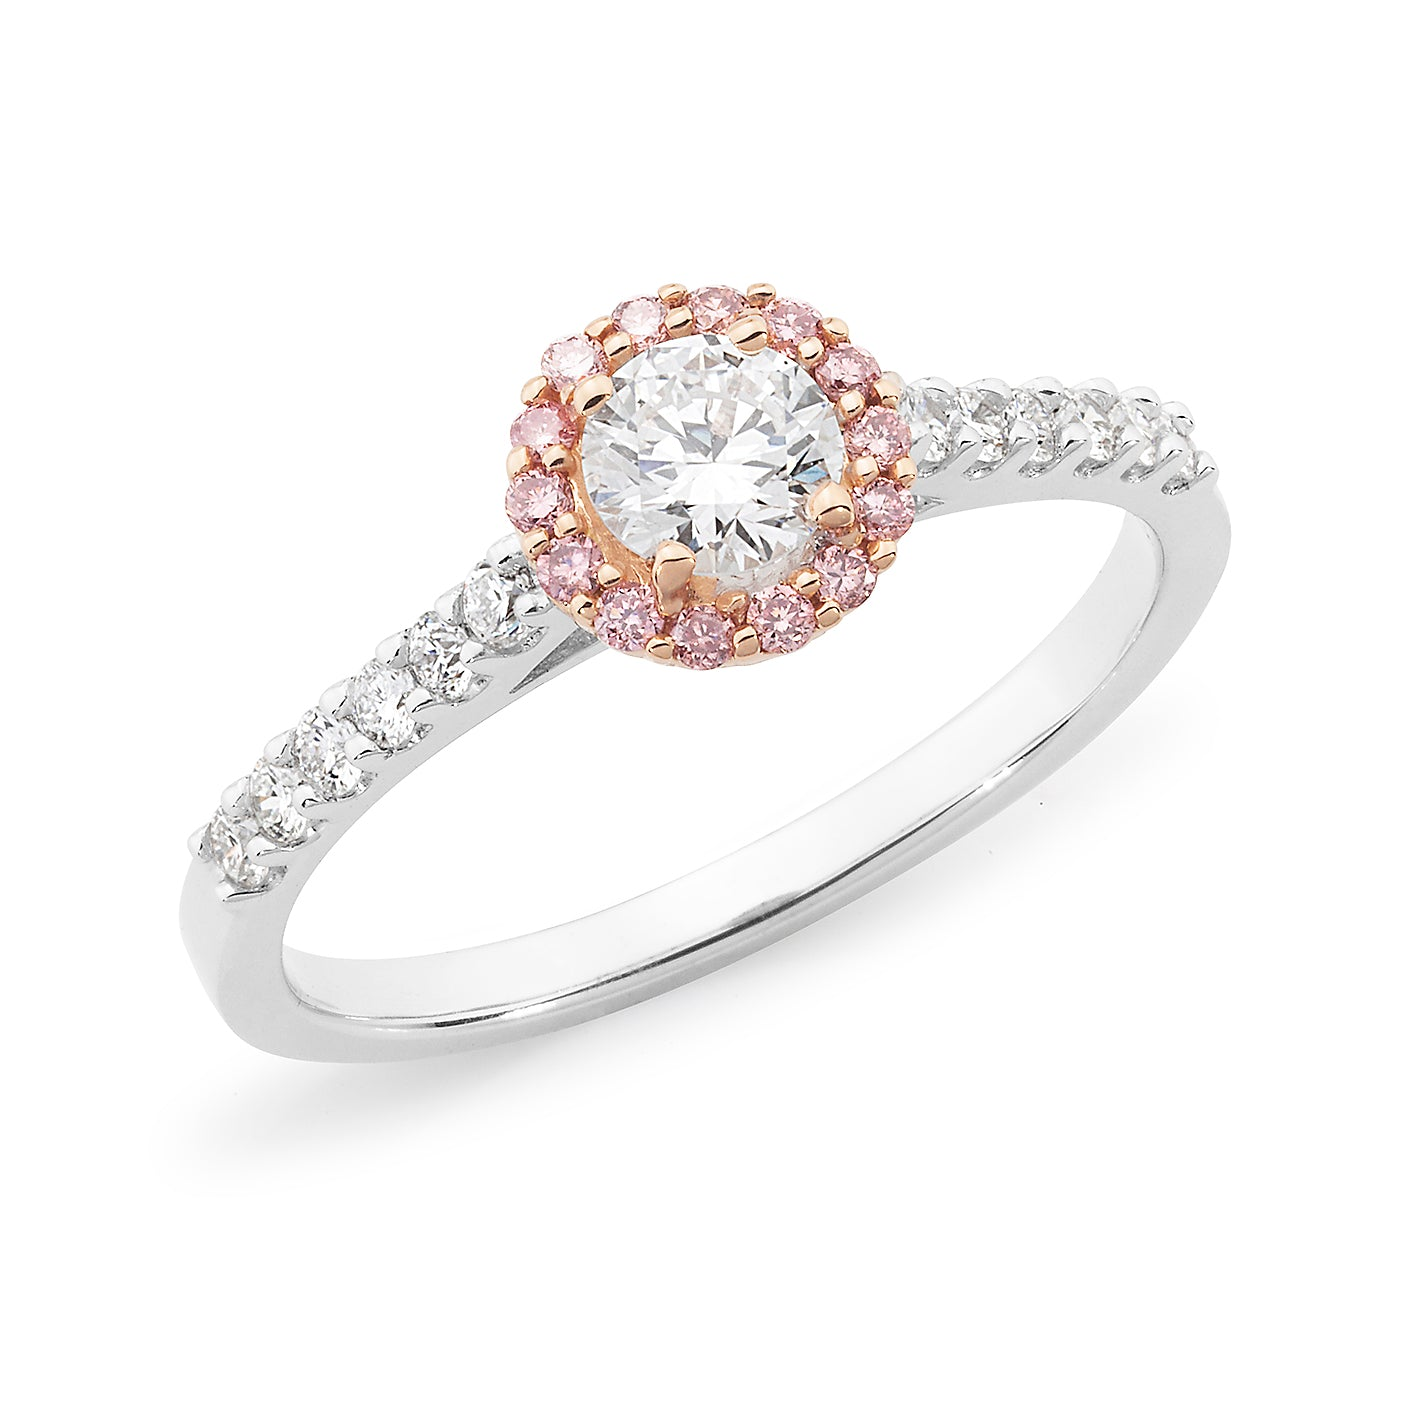 DIAMOND HALO RBC RING PINK CAVIAR IN 18CT WHITE & ROSE GOLD (0.33CT CENTRE, SI GH) TDW 0.615CT